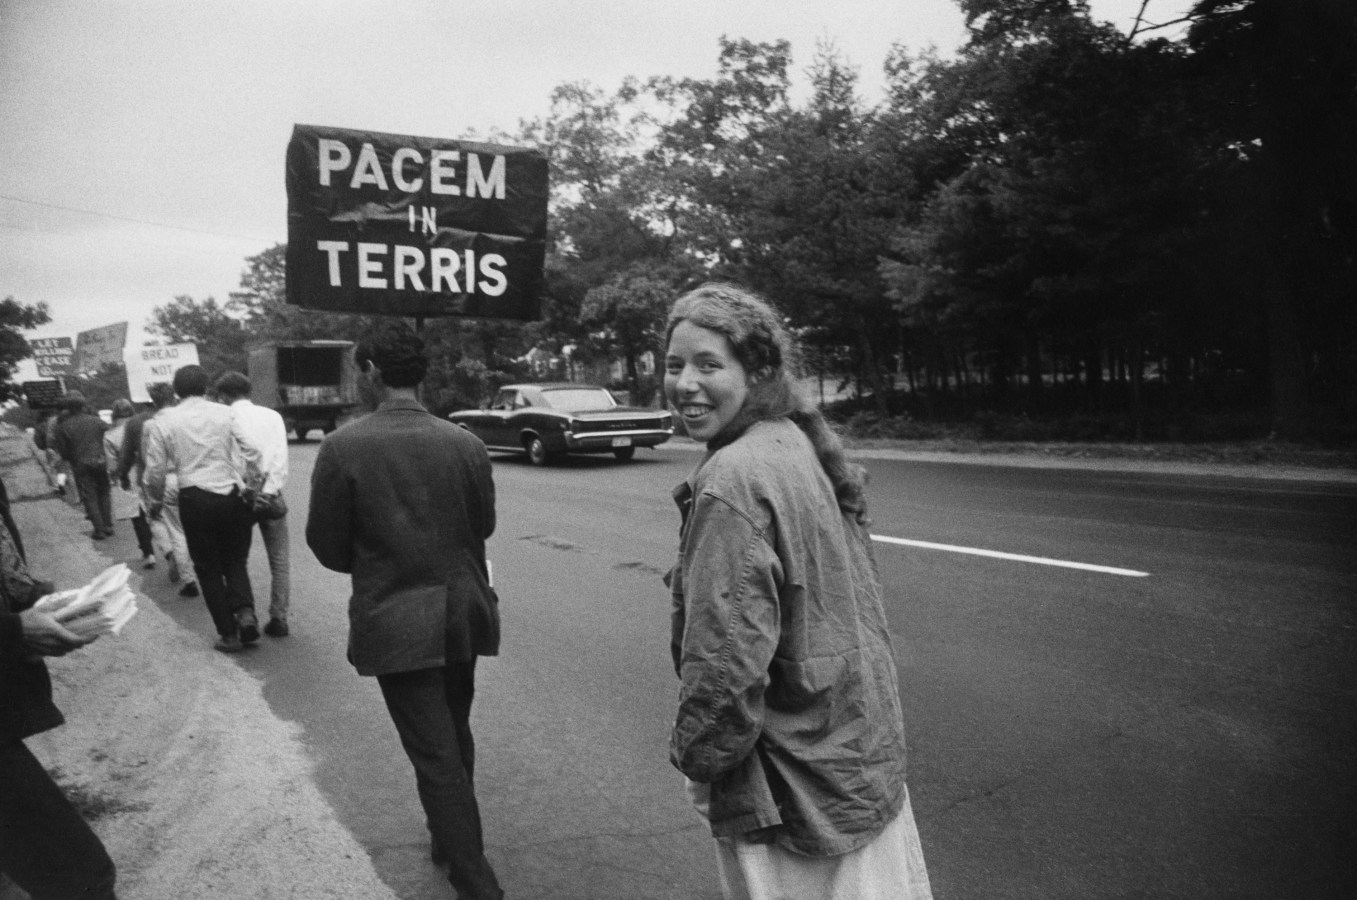 Black-and-white photograph of a woman smiling turning around mid-step following a man with a sign reading PACEM IN TERRIS in a line of people holding signs